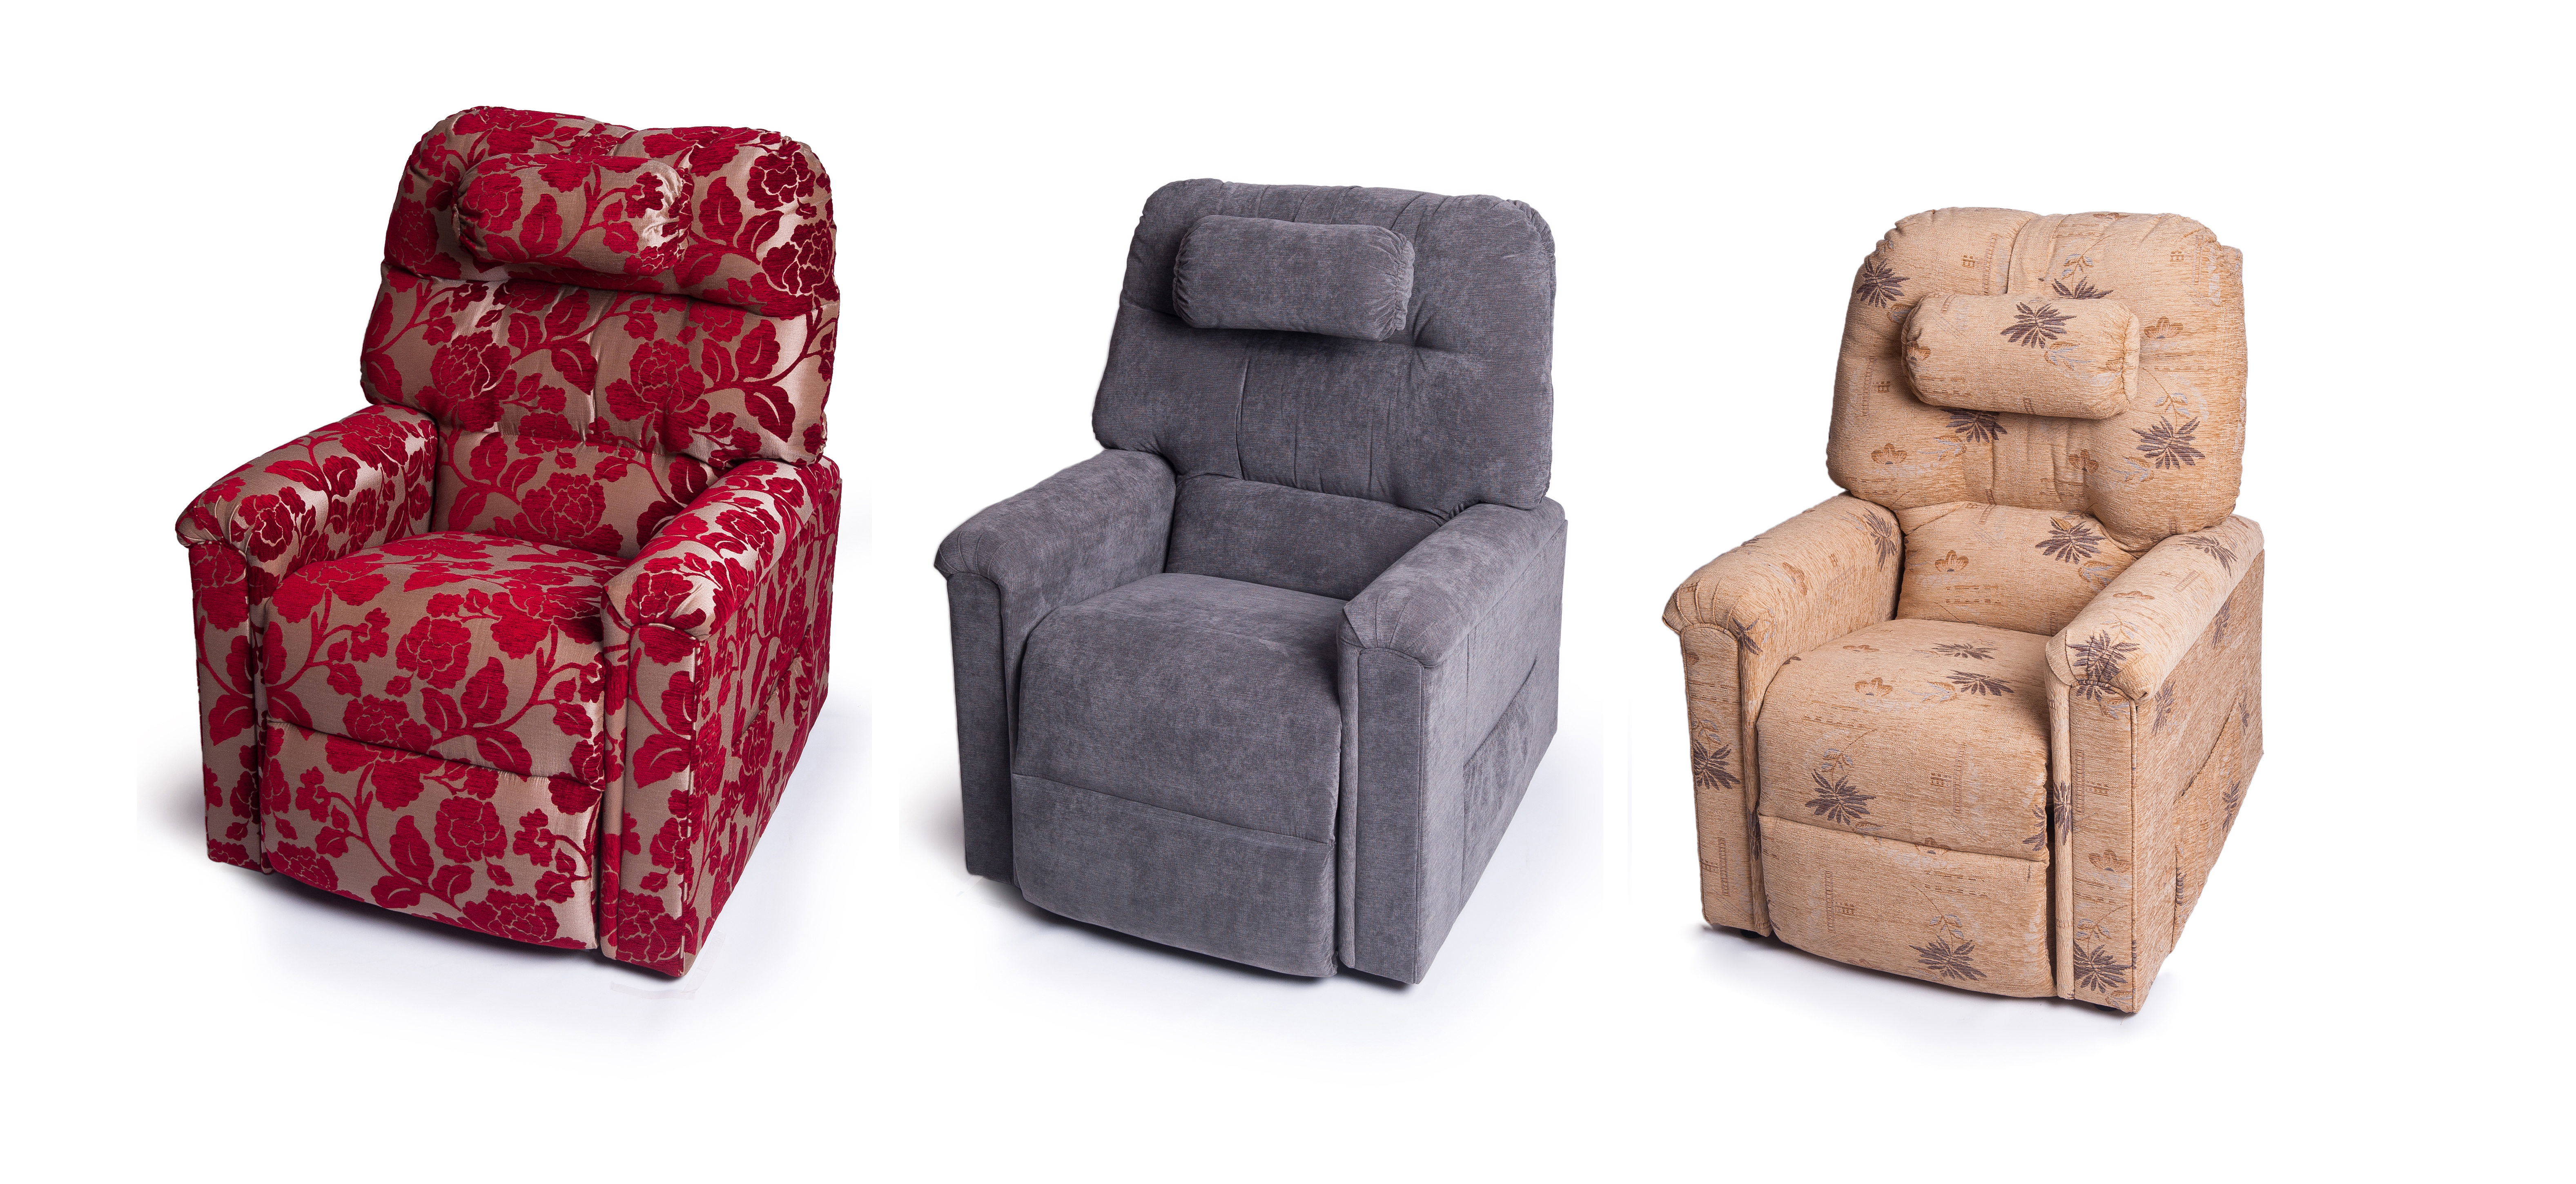 Adjustamatic® announces extension to its Blenheim riser recliner chair range